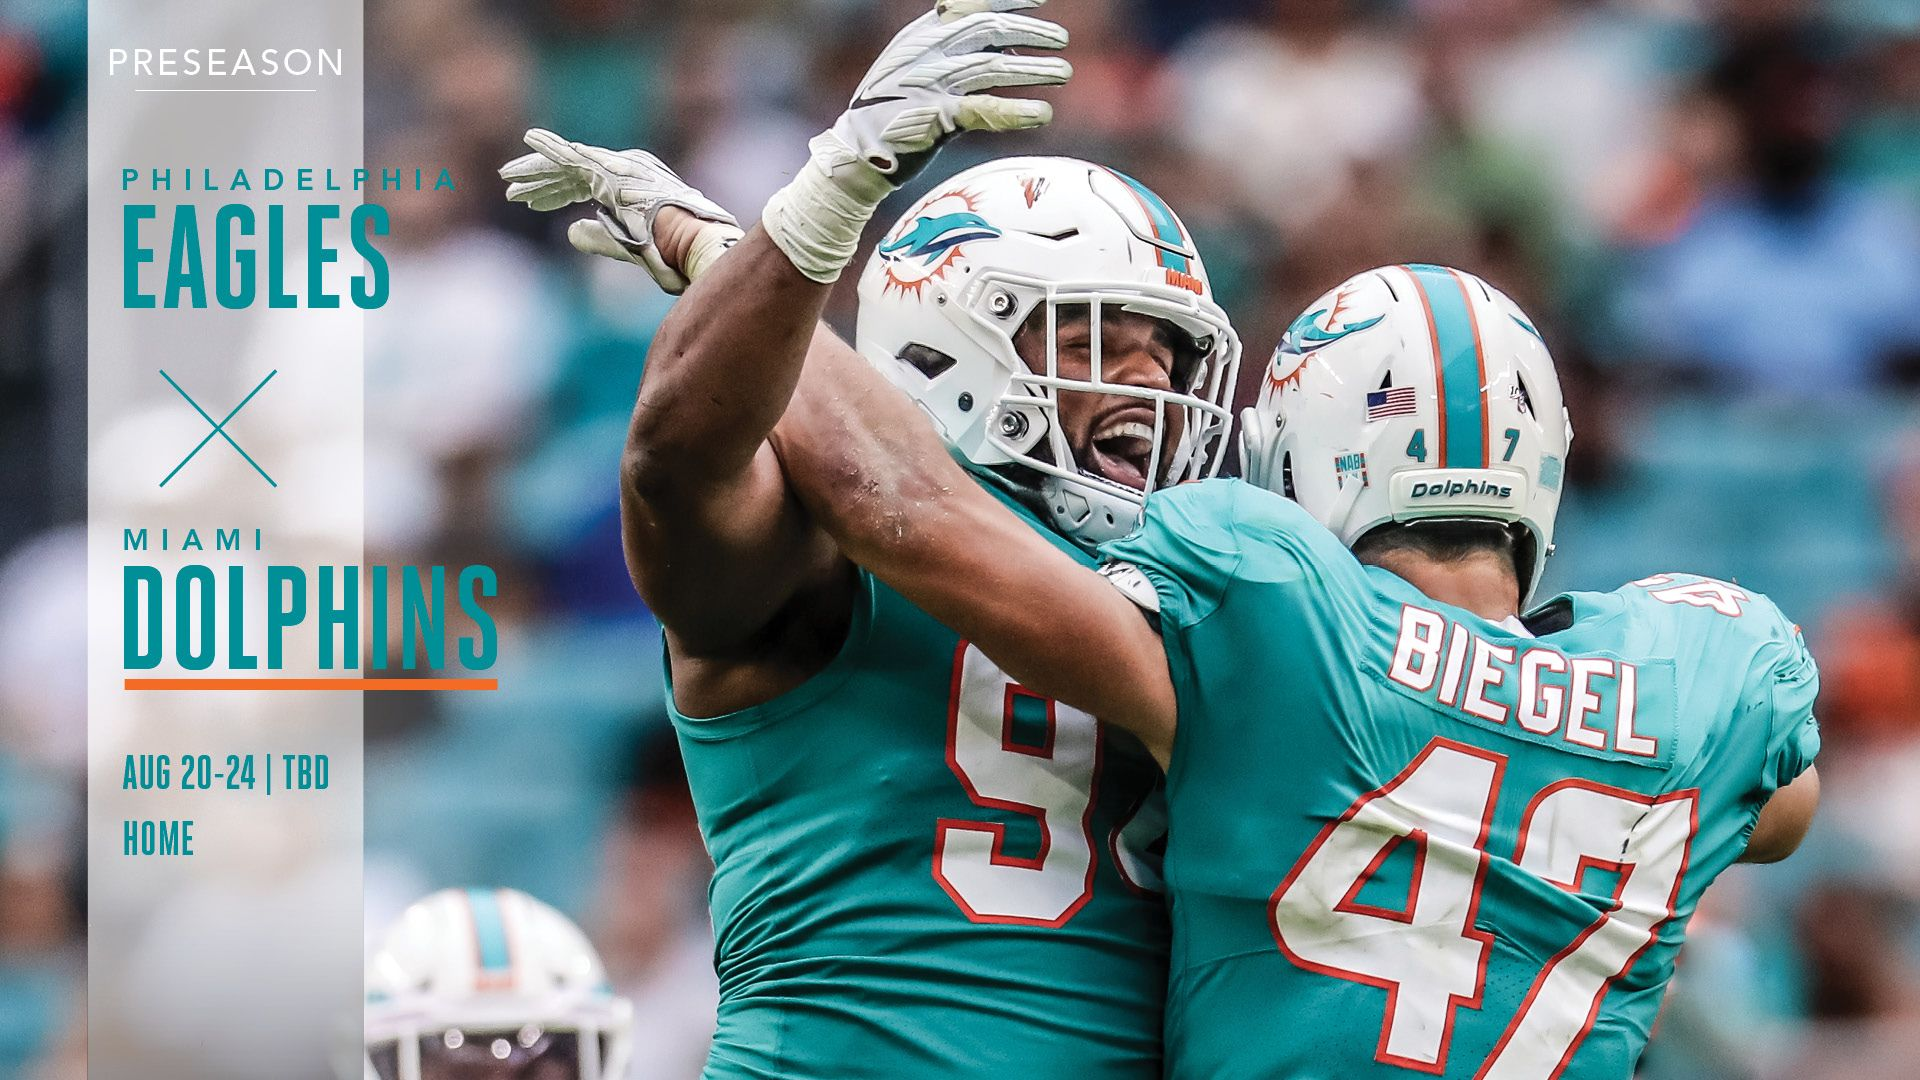 Buy Tickets: Eagles vs. Dolphins, August 20-24 at Hard Rock Stadium